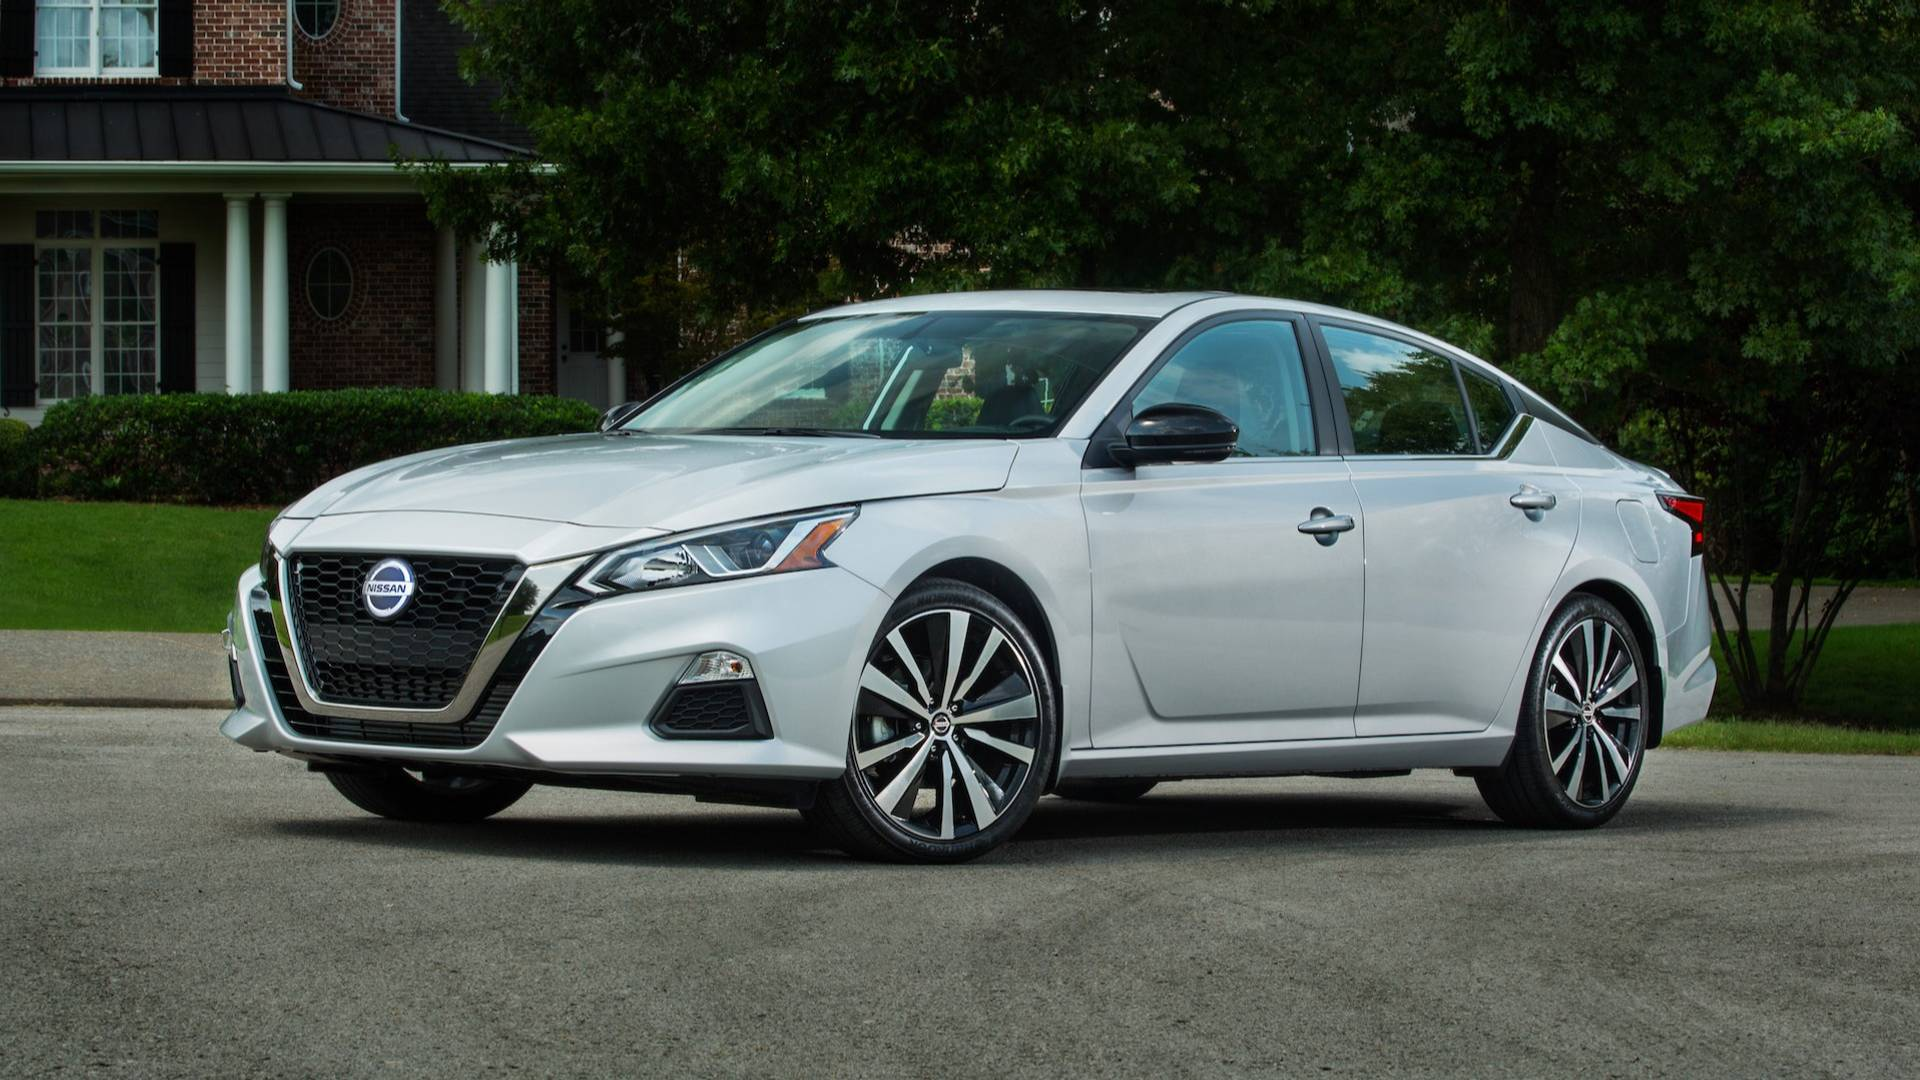 2019 Nissan Altima Starts At 23 750 Turbo Goes For 29 150